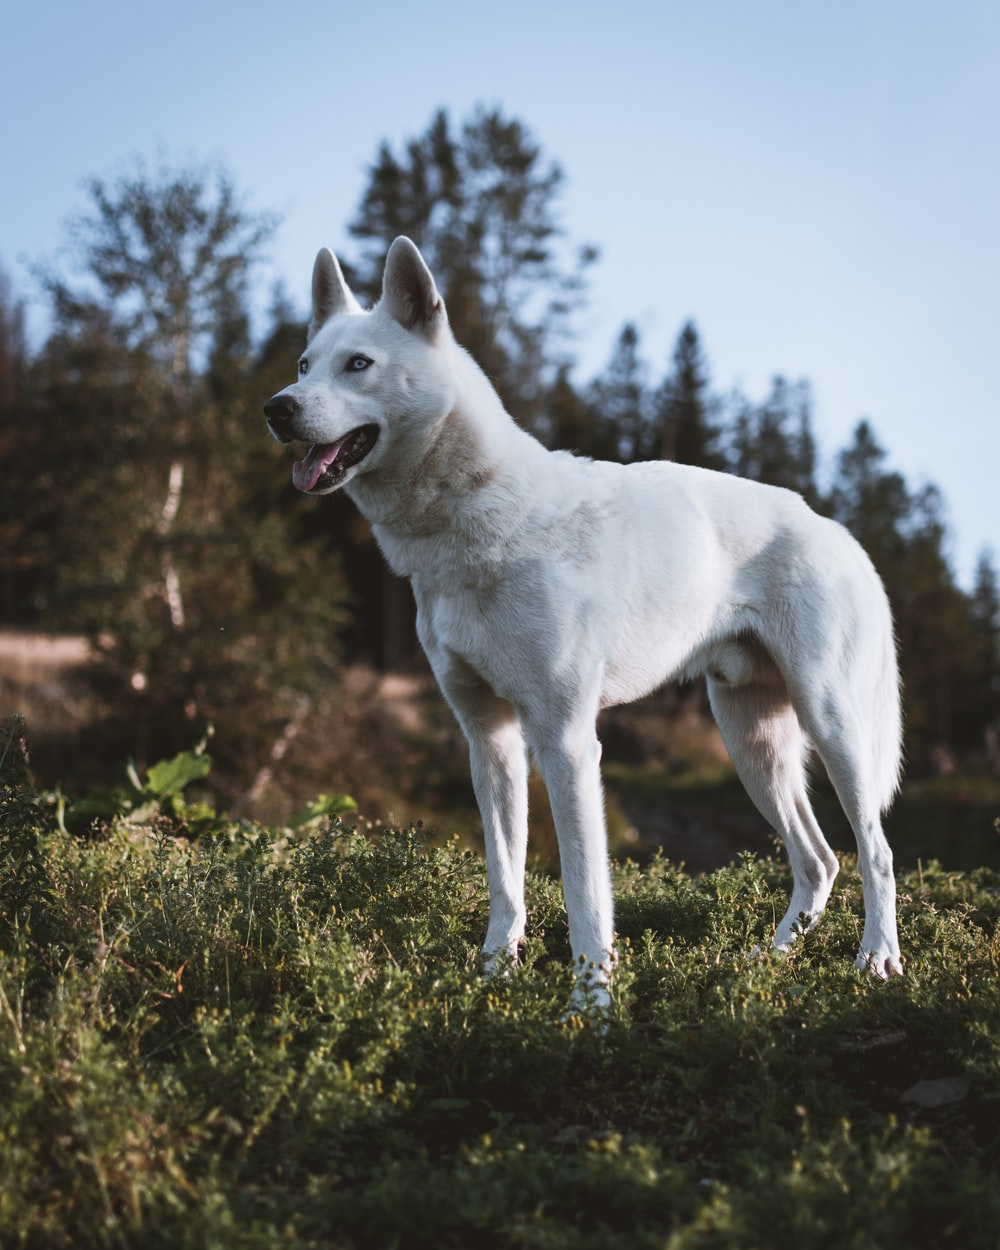 white dog on green field close-up photography